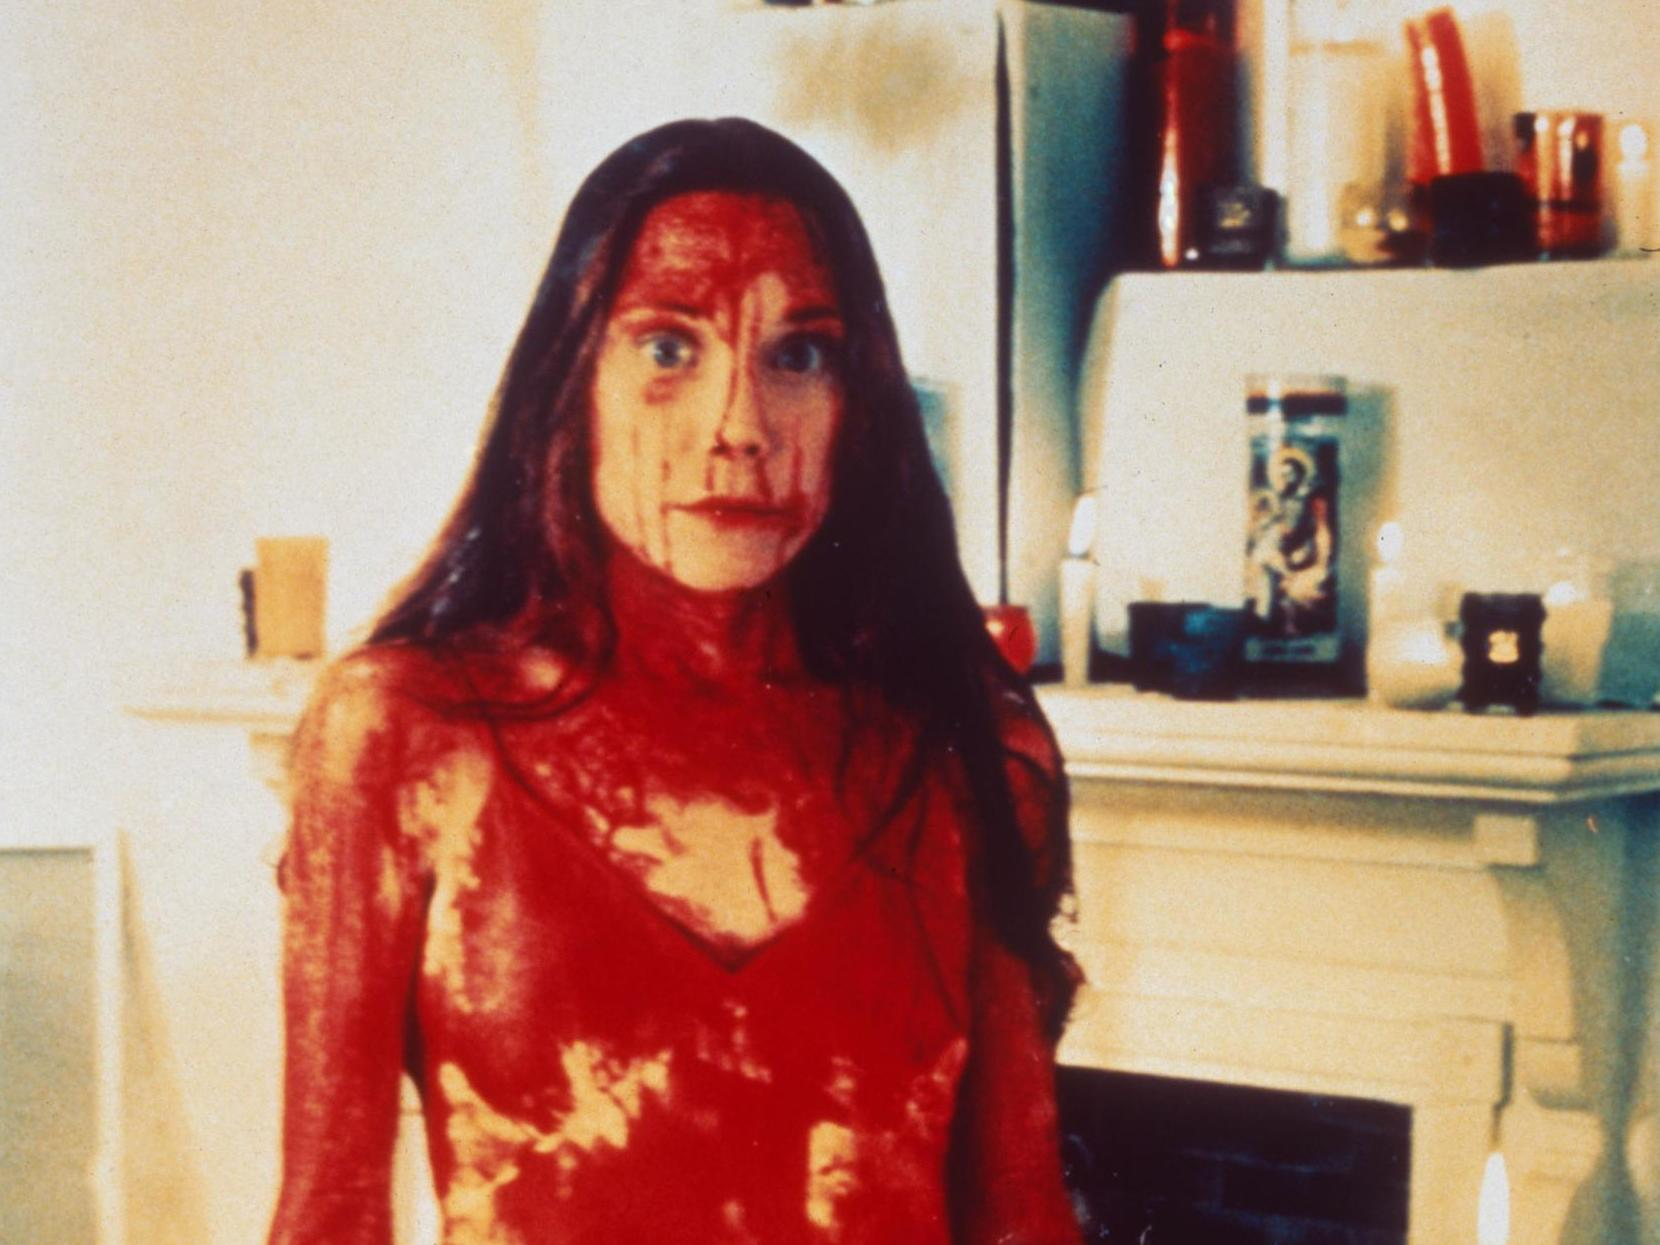 Netflix's 19 best horror films, from Carrie to Cabin in the Woods